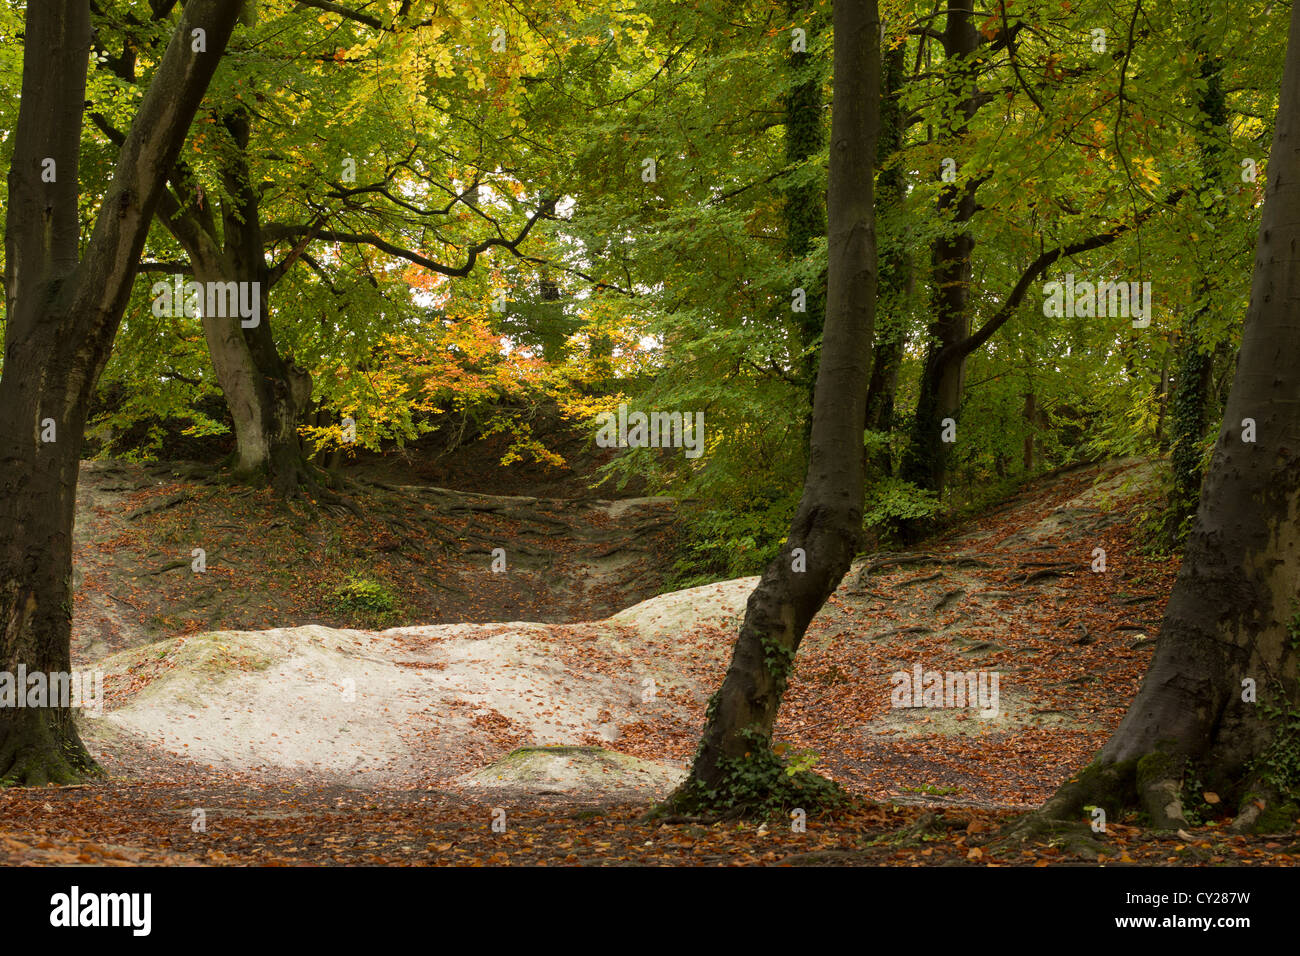 Autumn at Barton Springs, Bedfordshire - Stock Image